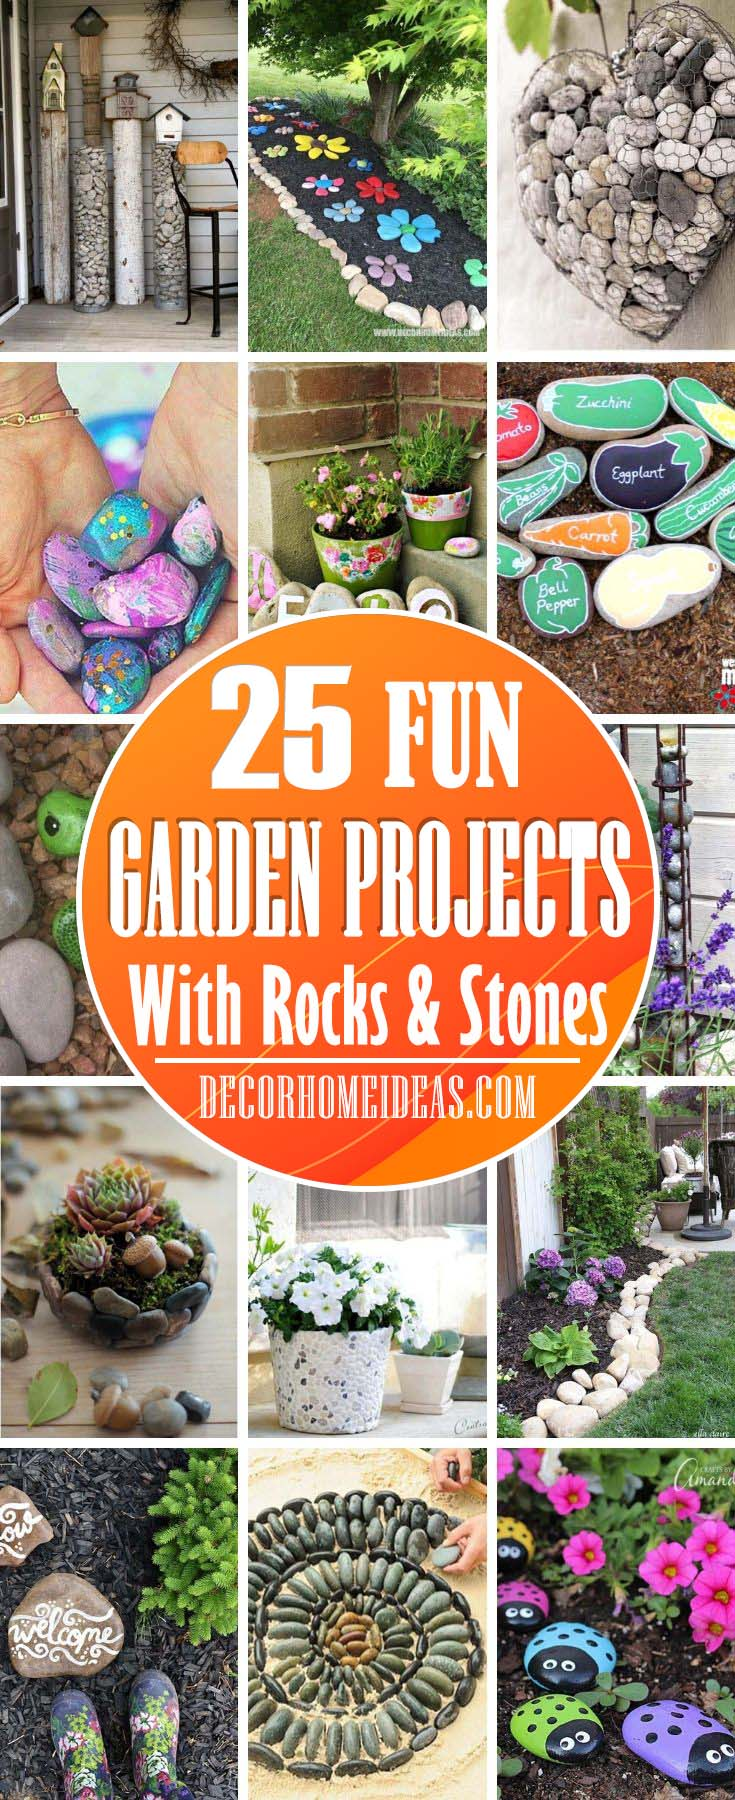 Fun Garden Project Ideas With Rocks And Stones. Creative DIY garden ideas to spruce up your backyard with rocks, stones and pebbles. #diy #garden #rocks #stones #decorhomeideas